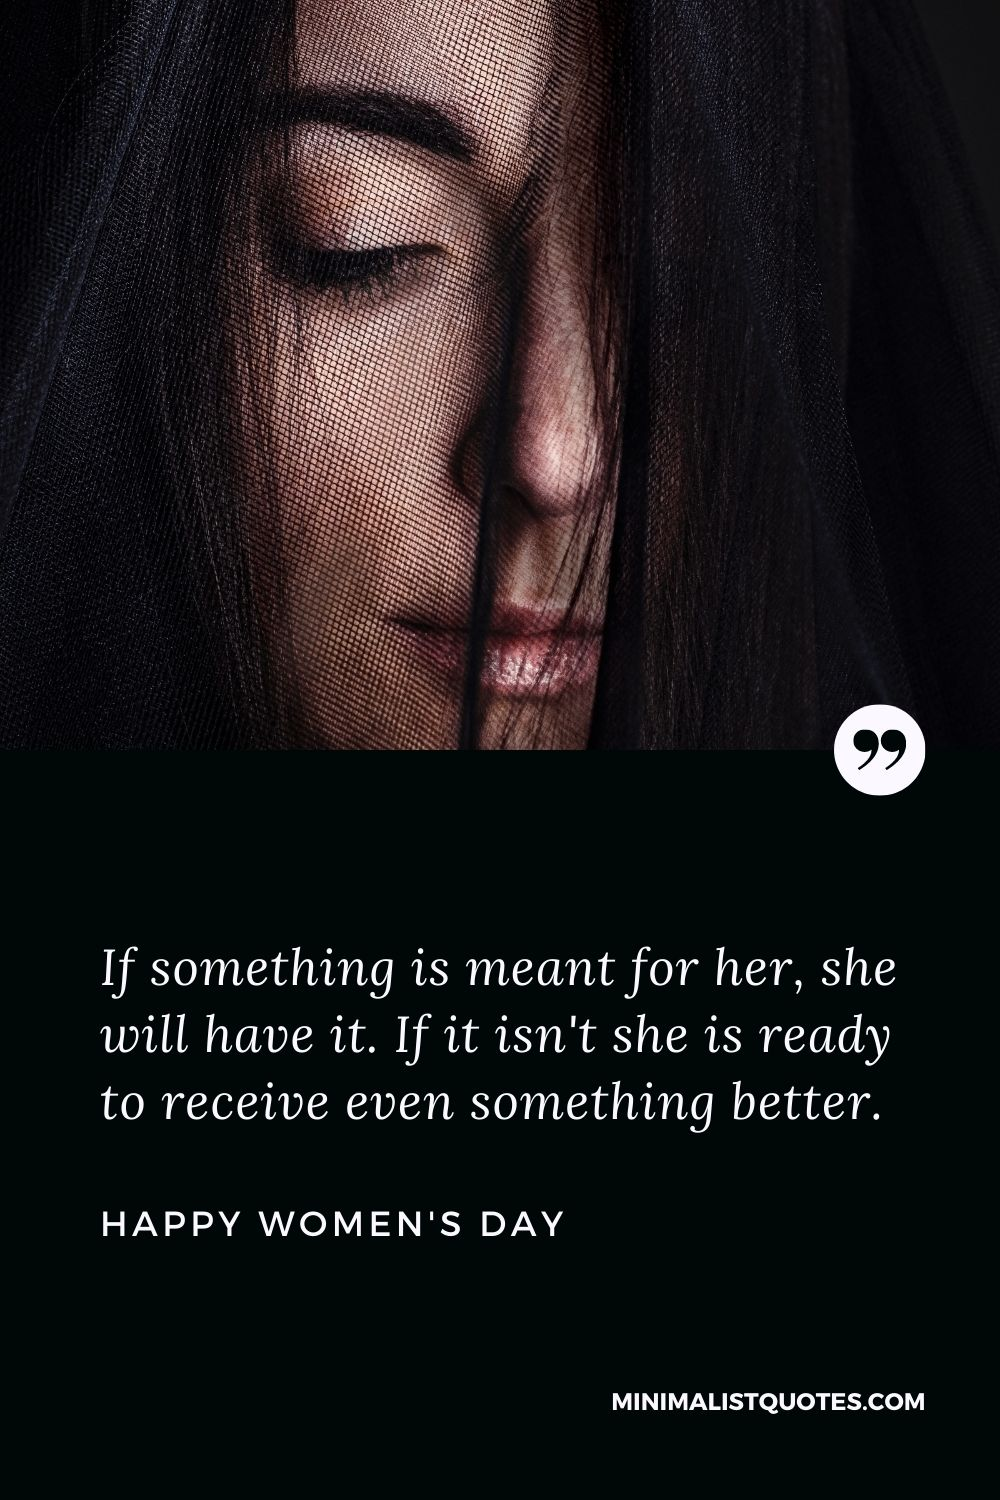 Women's Day Wish - If something is meant for her, she will have it. If it isn't she is ready to receive even something better.